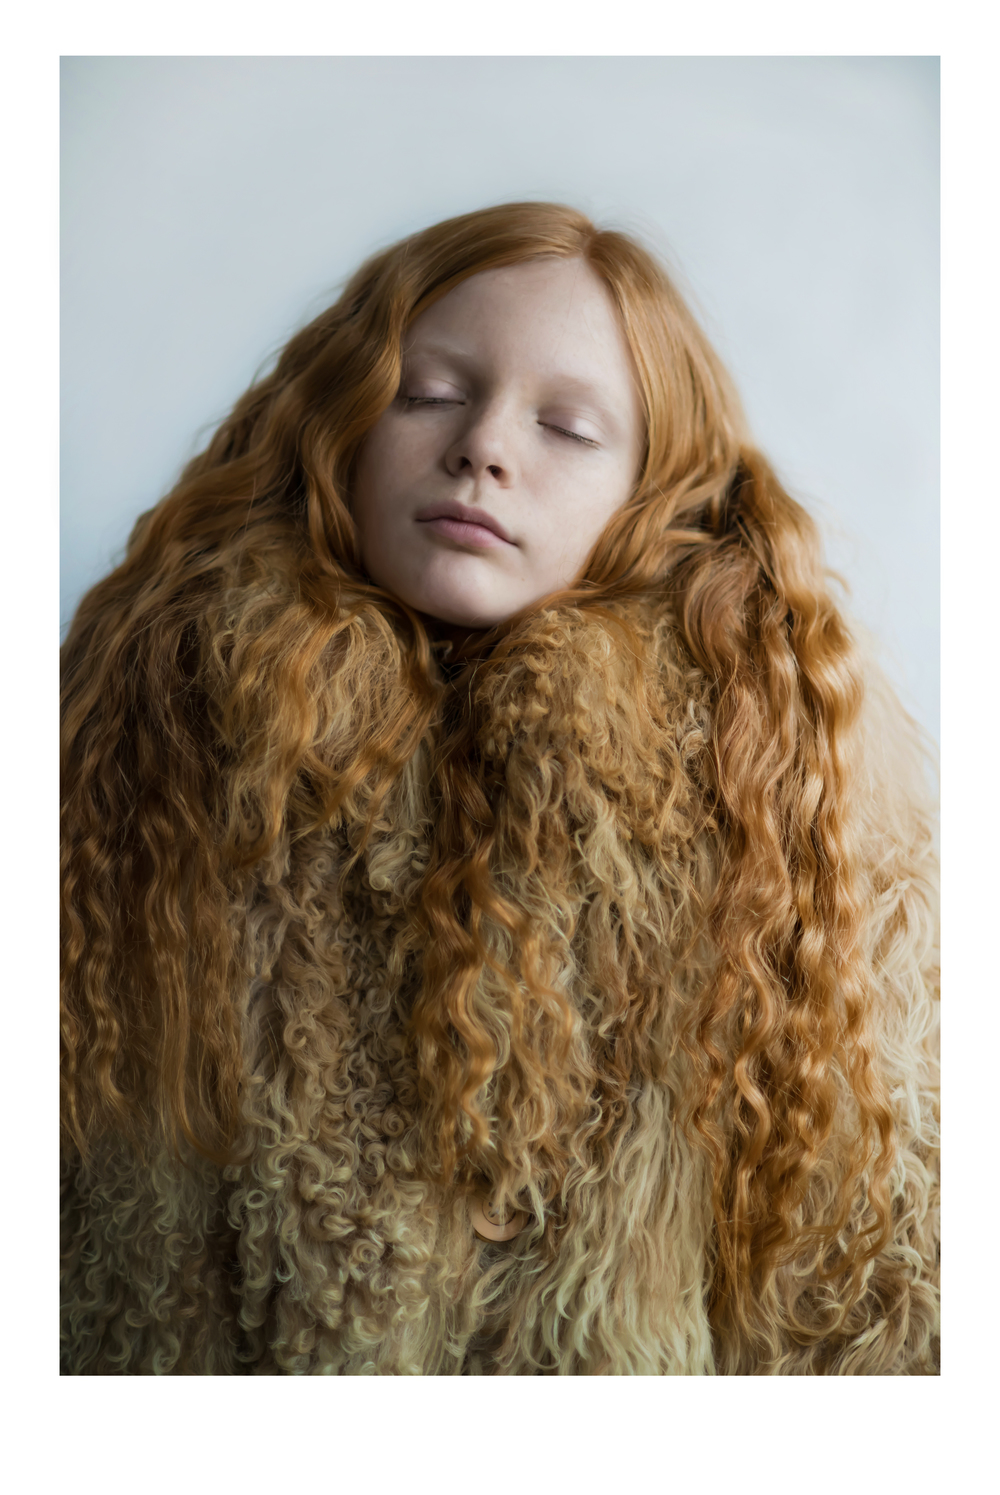 NPG Taylor Wessing Portrait Prize entry 2016  'Erin'